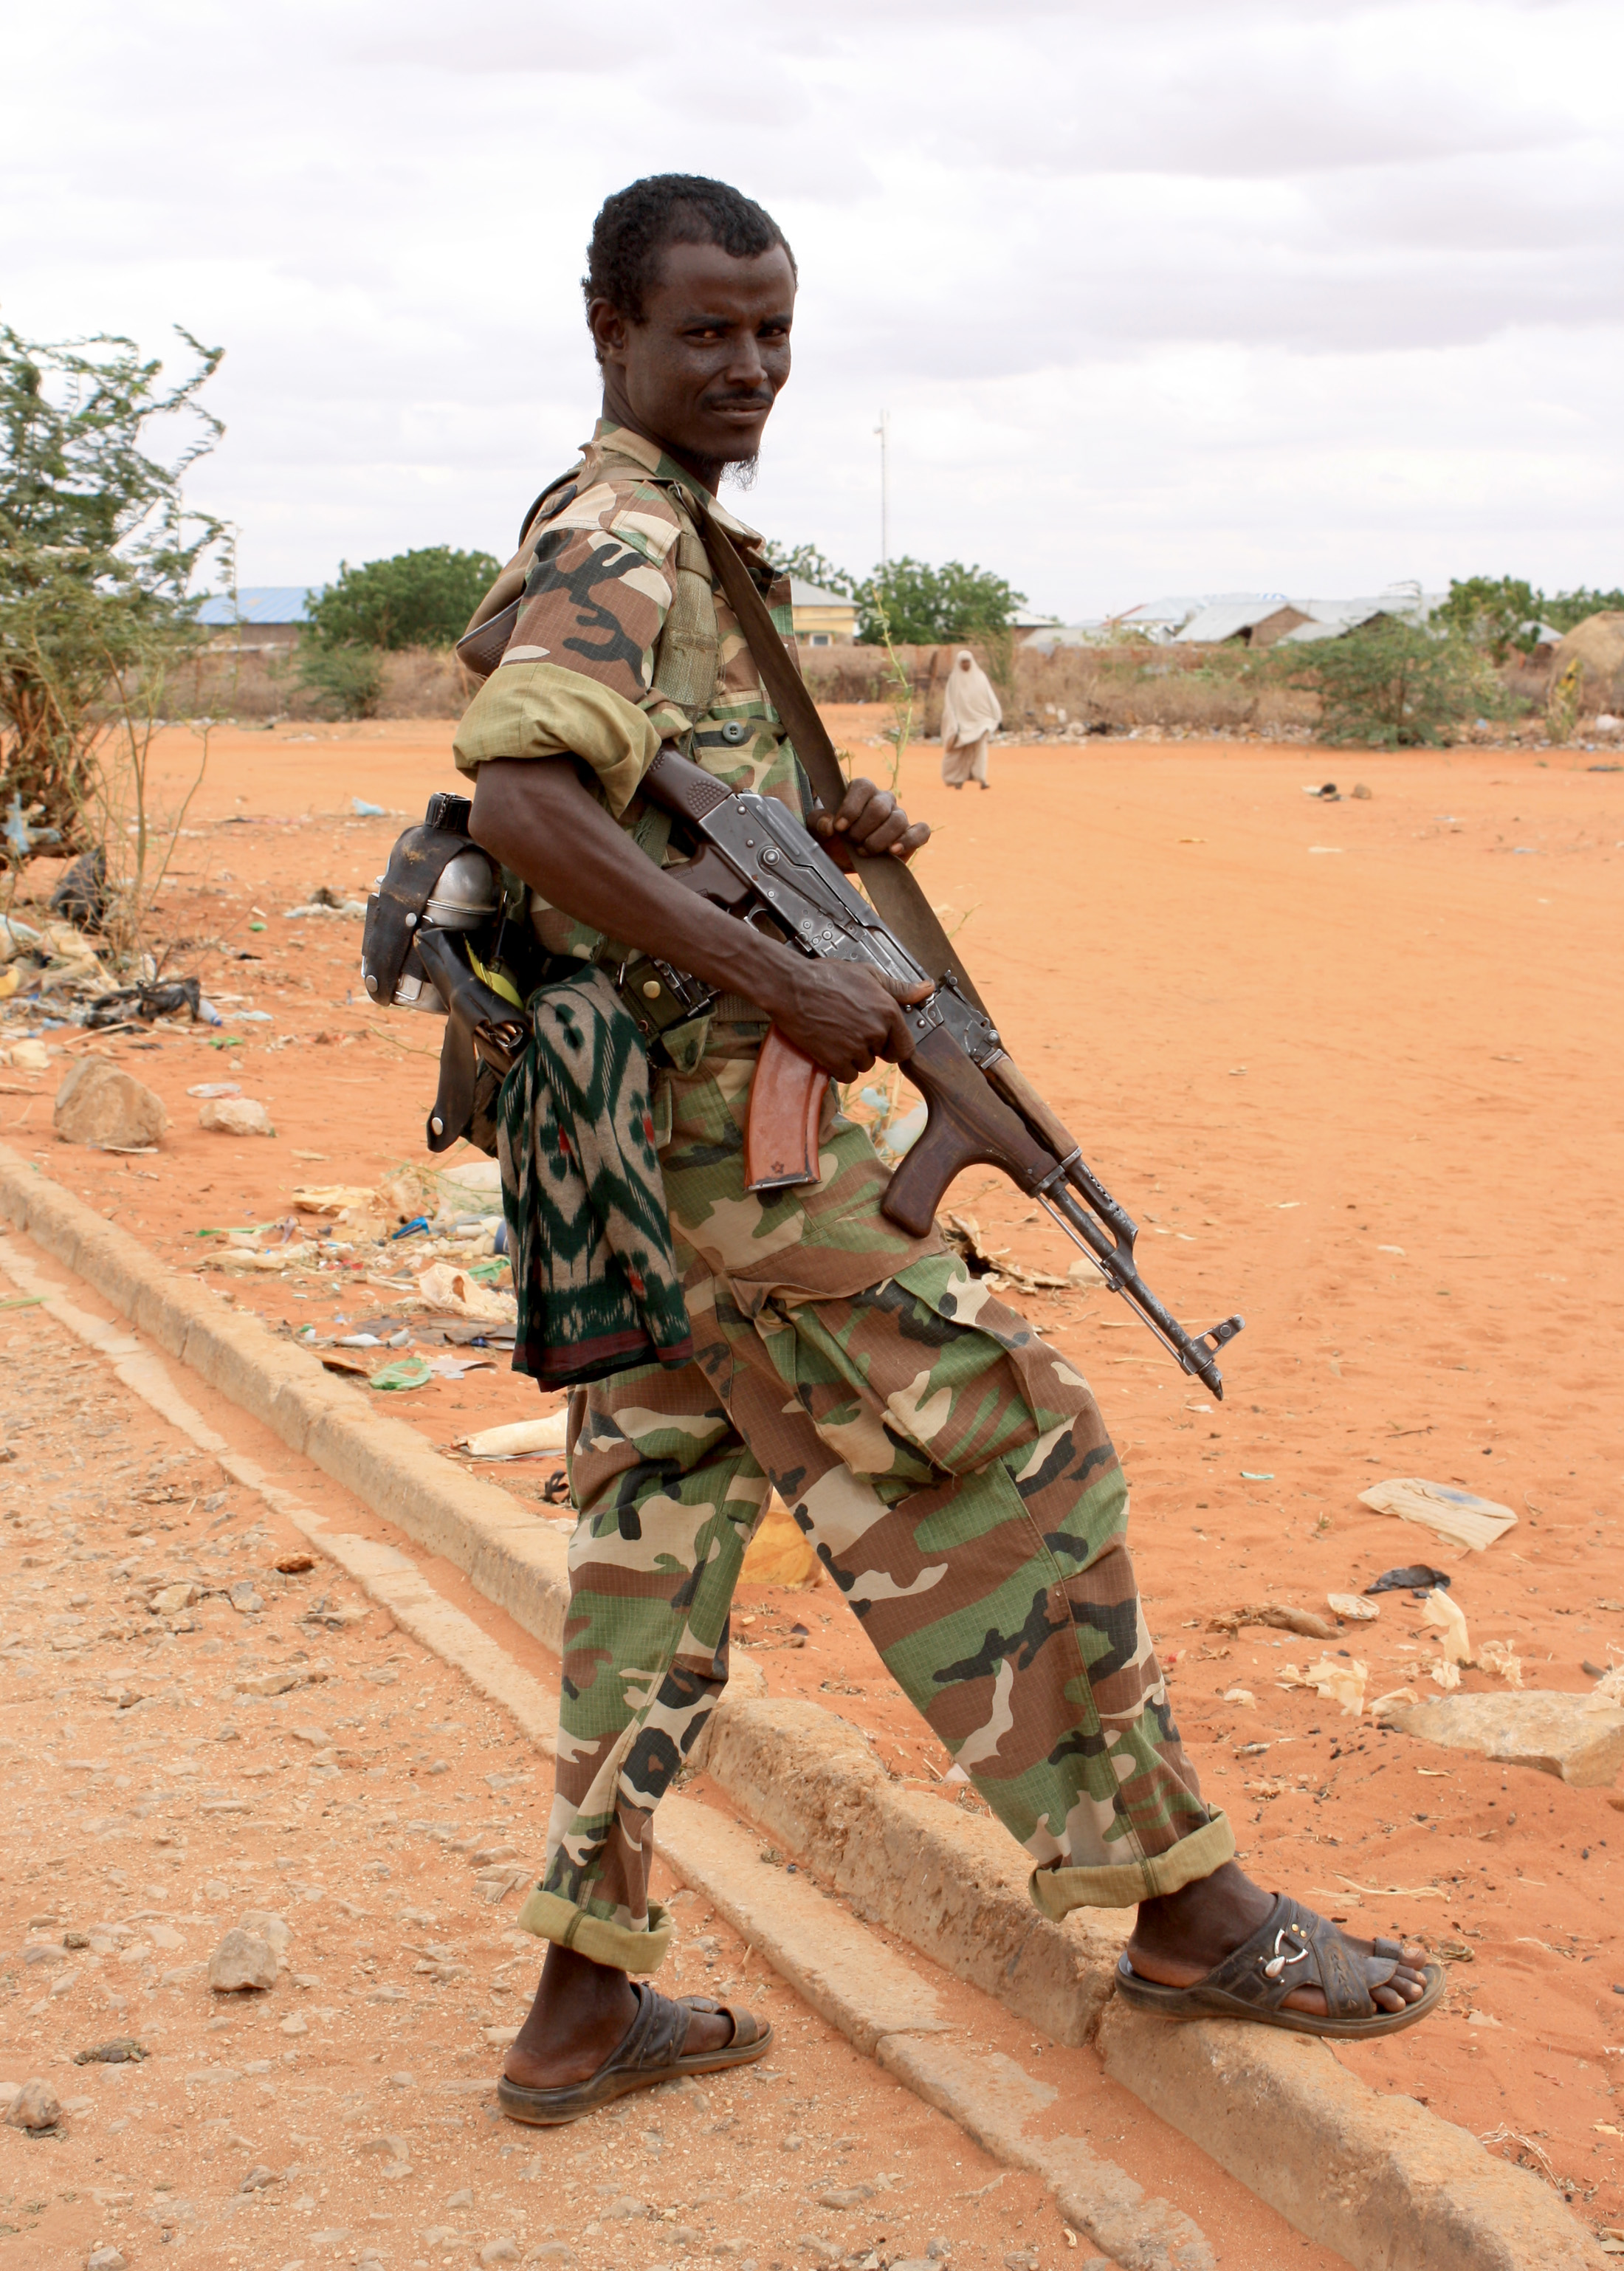 A Somali Transitional Federal Government soldier on the border between Bulo Hawo, the Somali town and Mandera town in northeastern Kenya